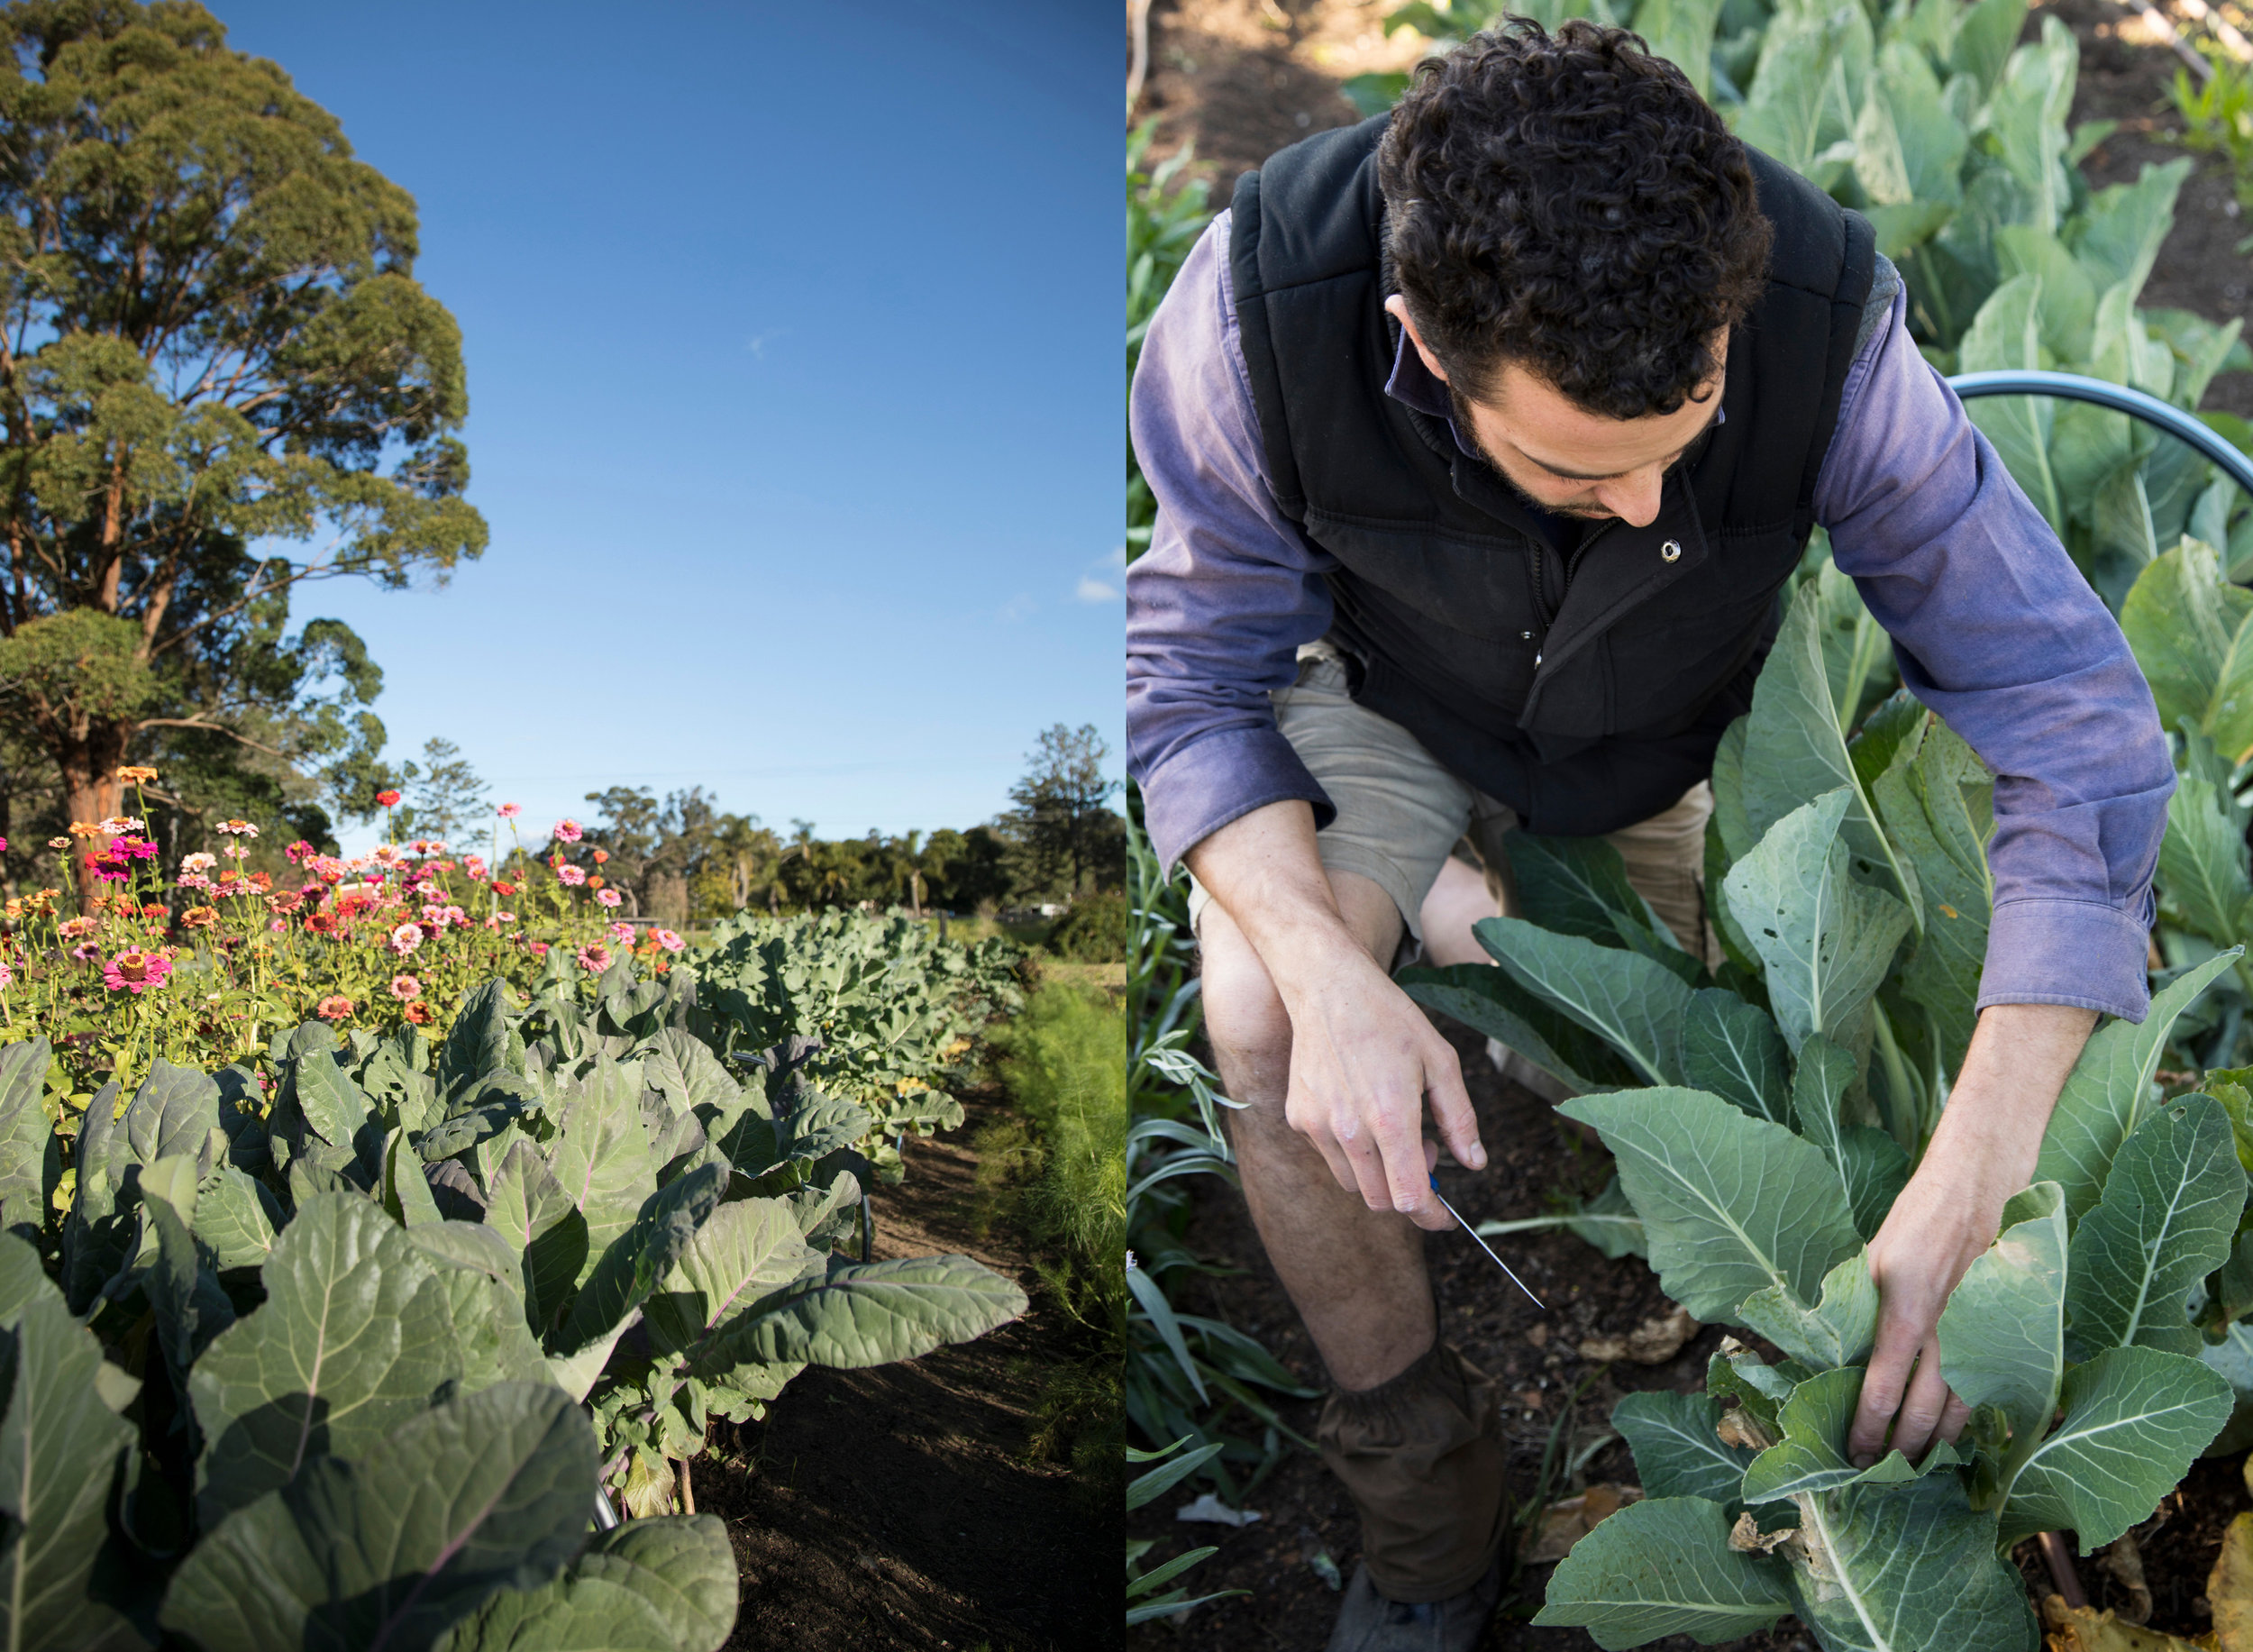 Giangi at work at Piccolo Farm in Thirlmere, NSW